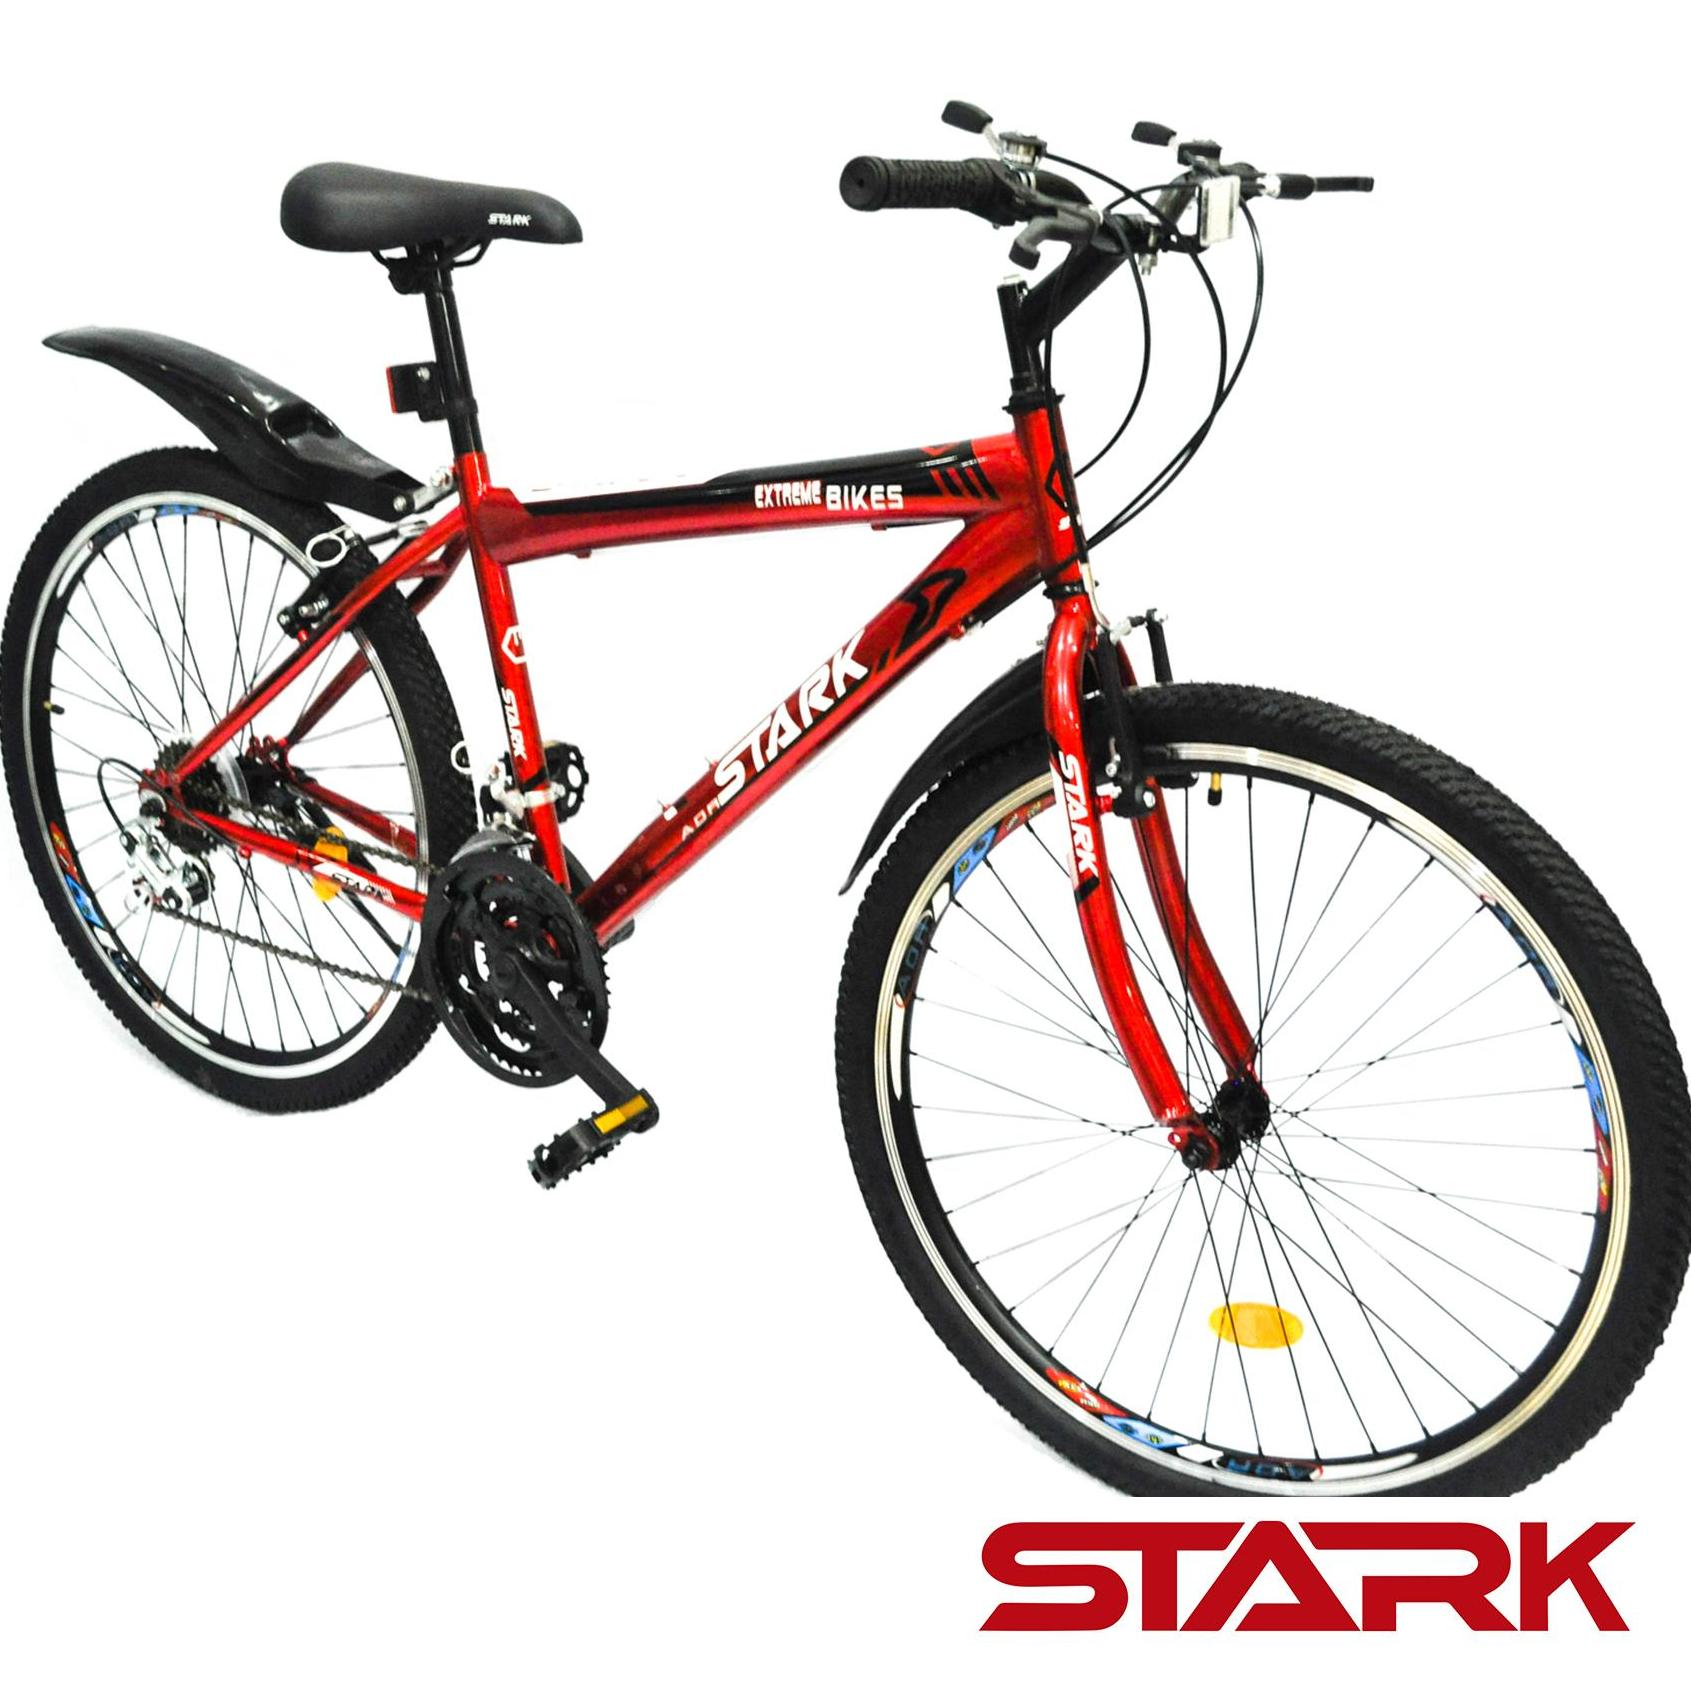 Bicycles Stark: reviews, review, features 11